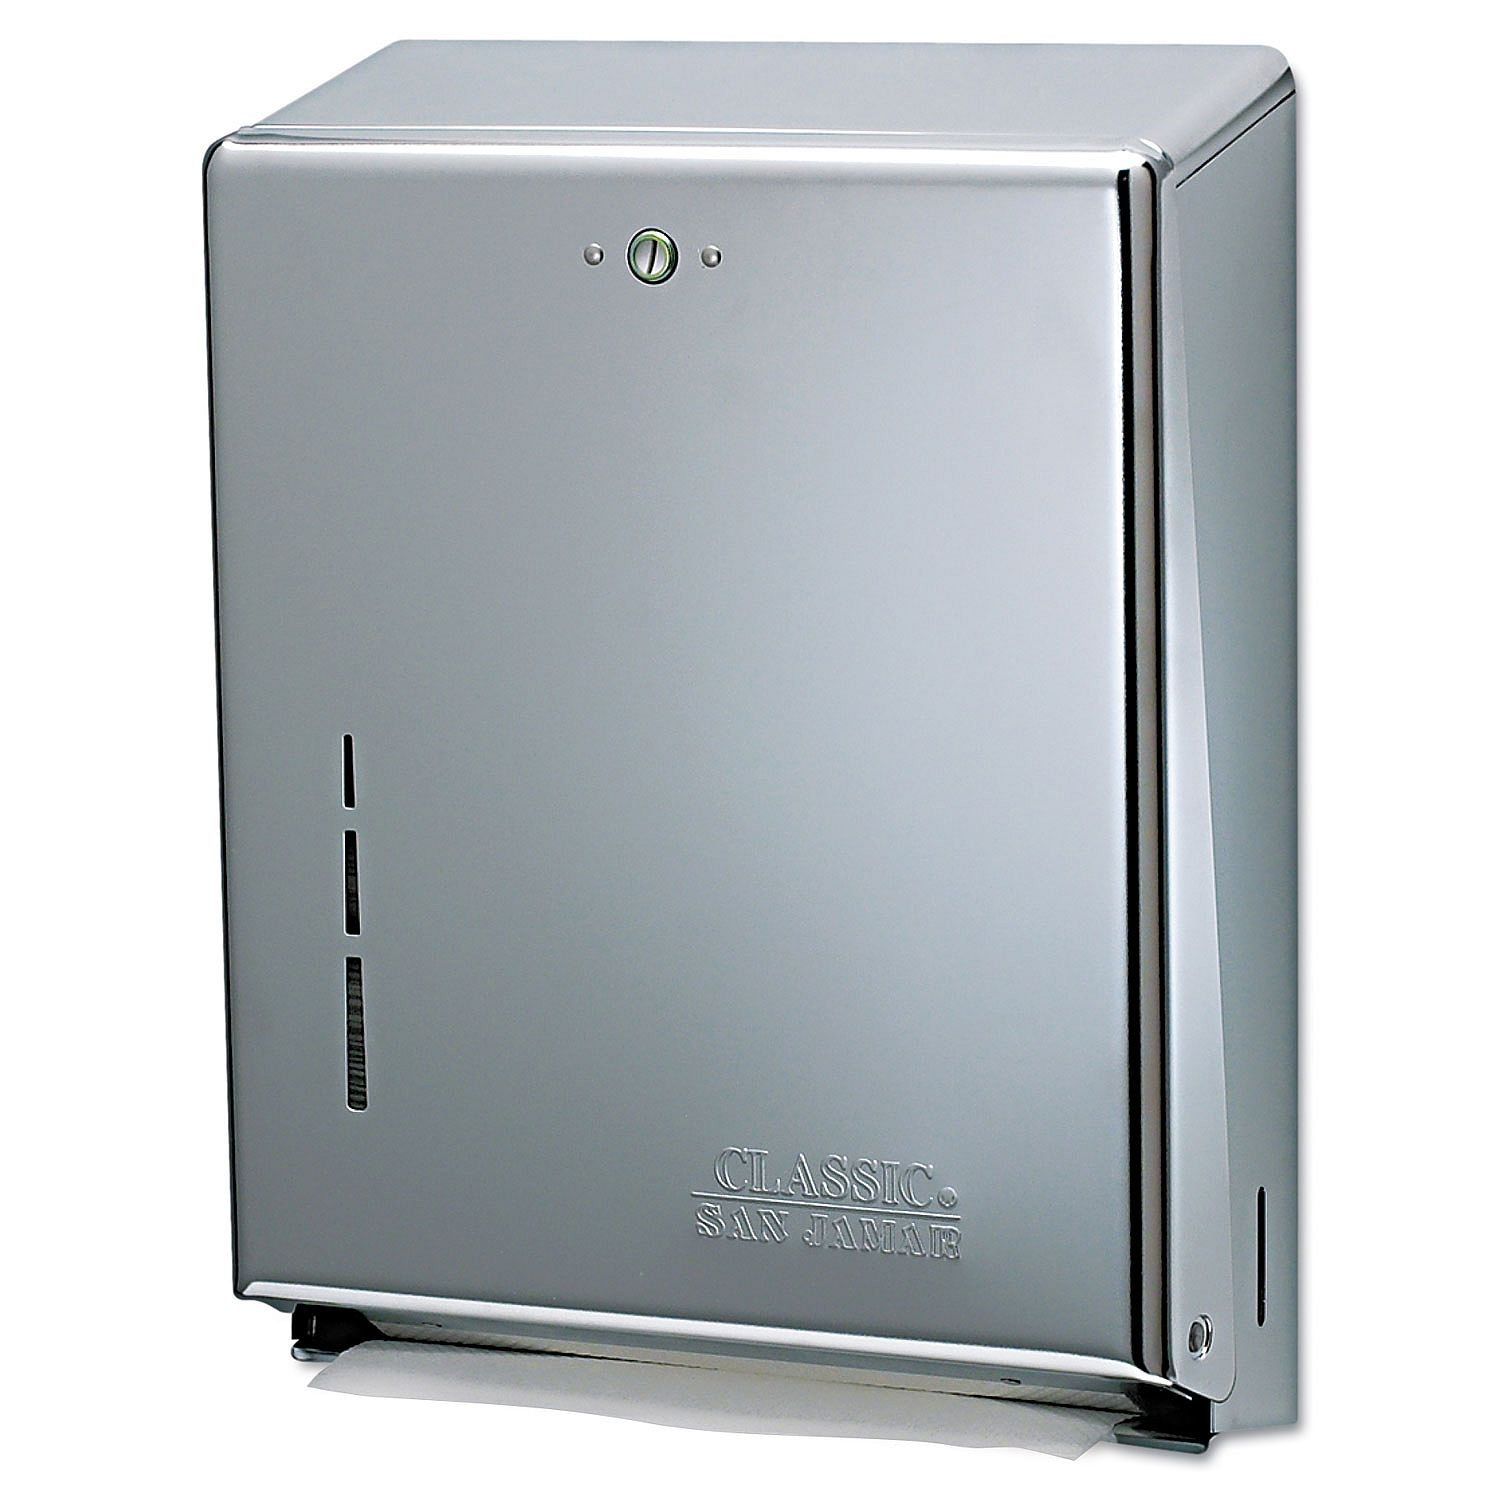 San Jamar T1900SS C-Fold/Multifold Commercial Towel Dispenser, 500 Multifold / 300 C-Fold Towel Capacity, Stainless Steel